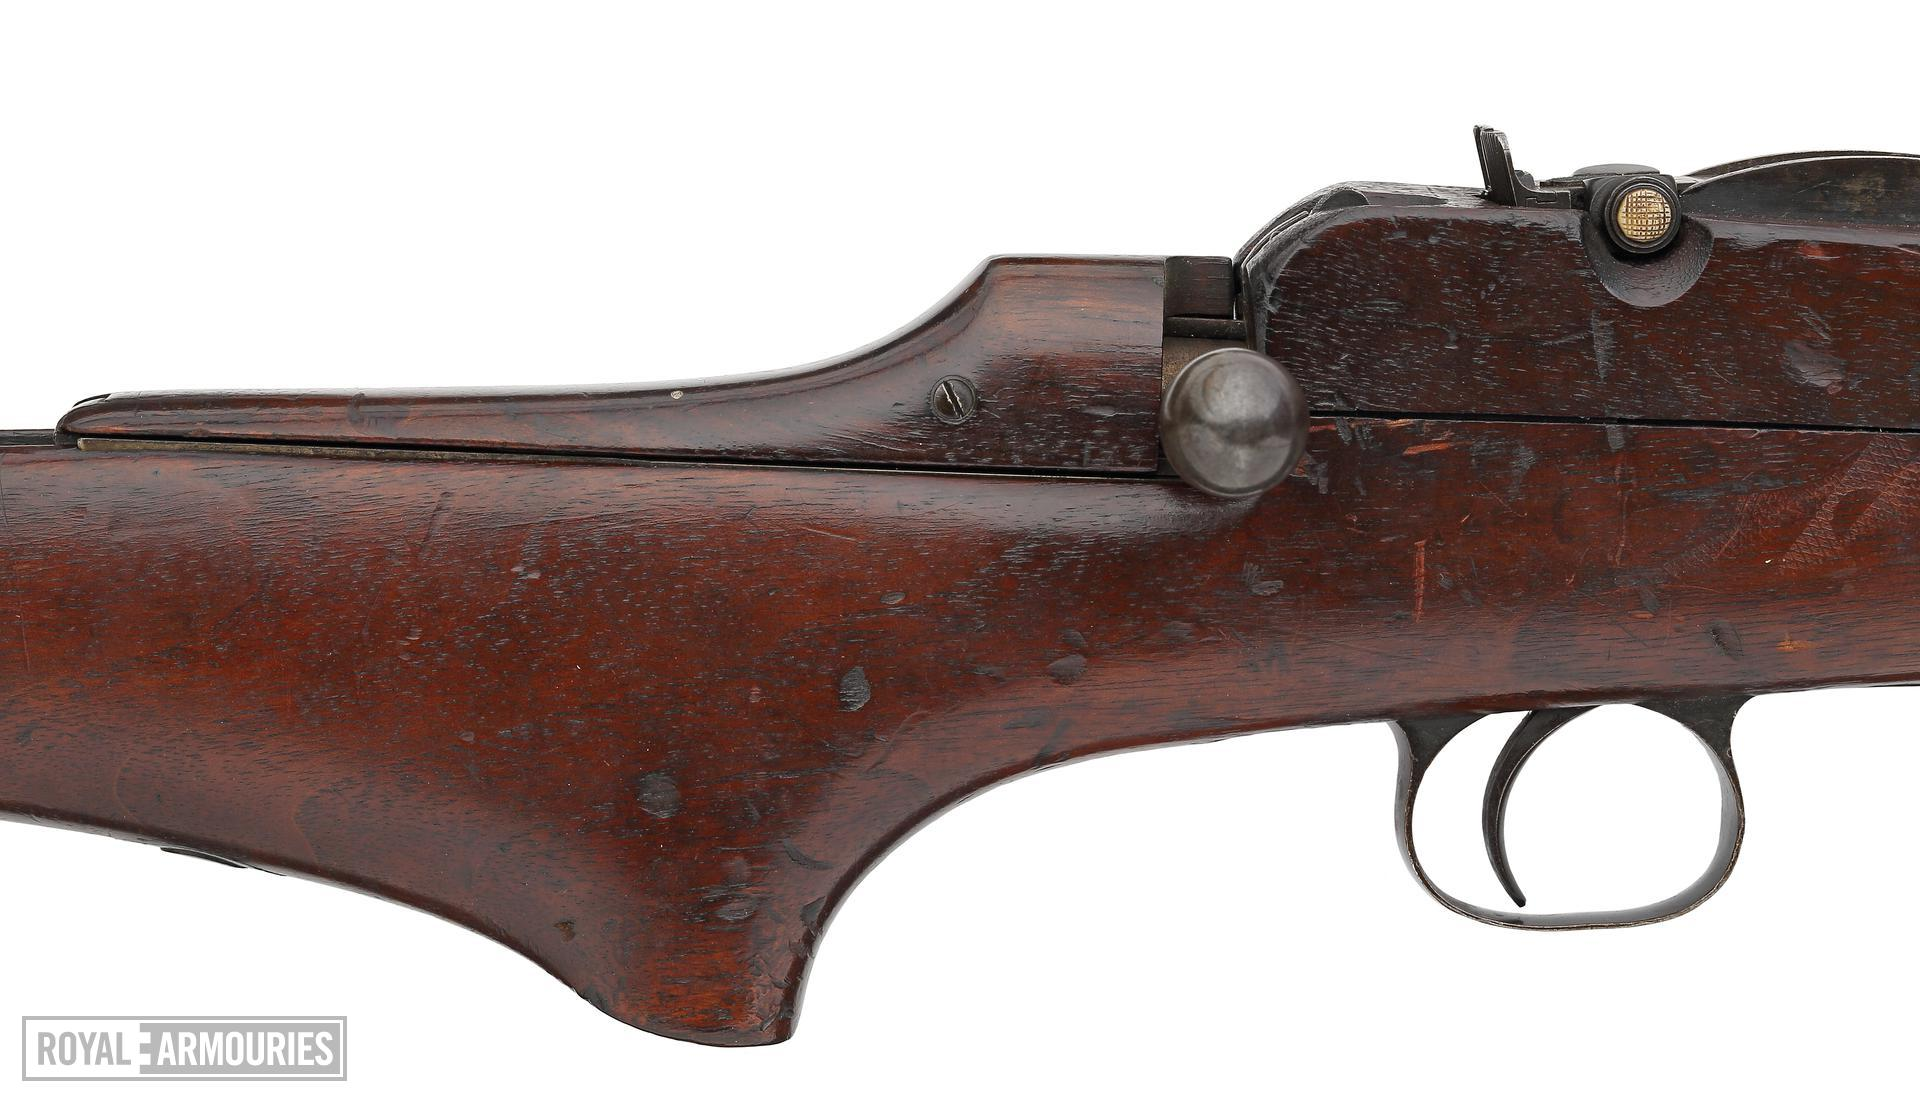 Centrefire bolt-action rifle - Thorneycroft Model 1906 Experimental